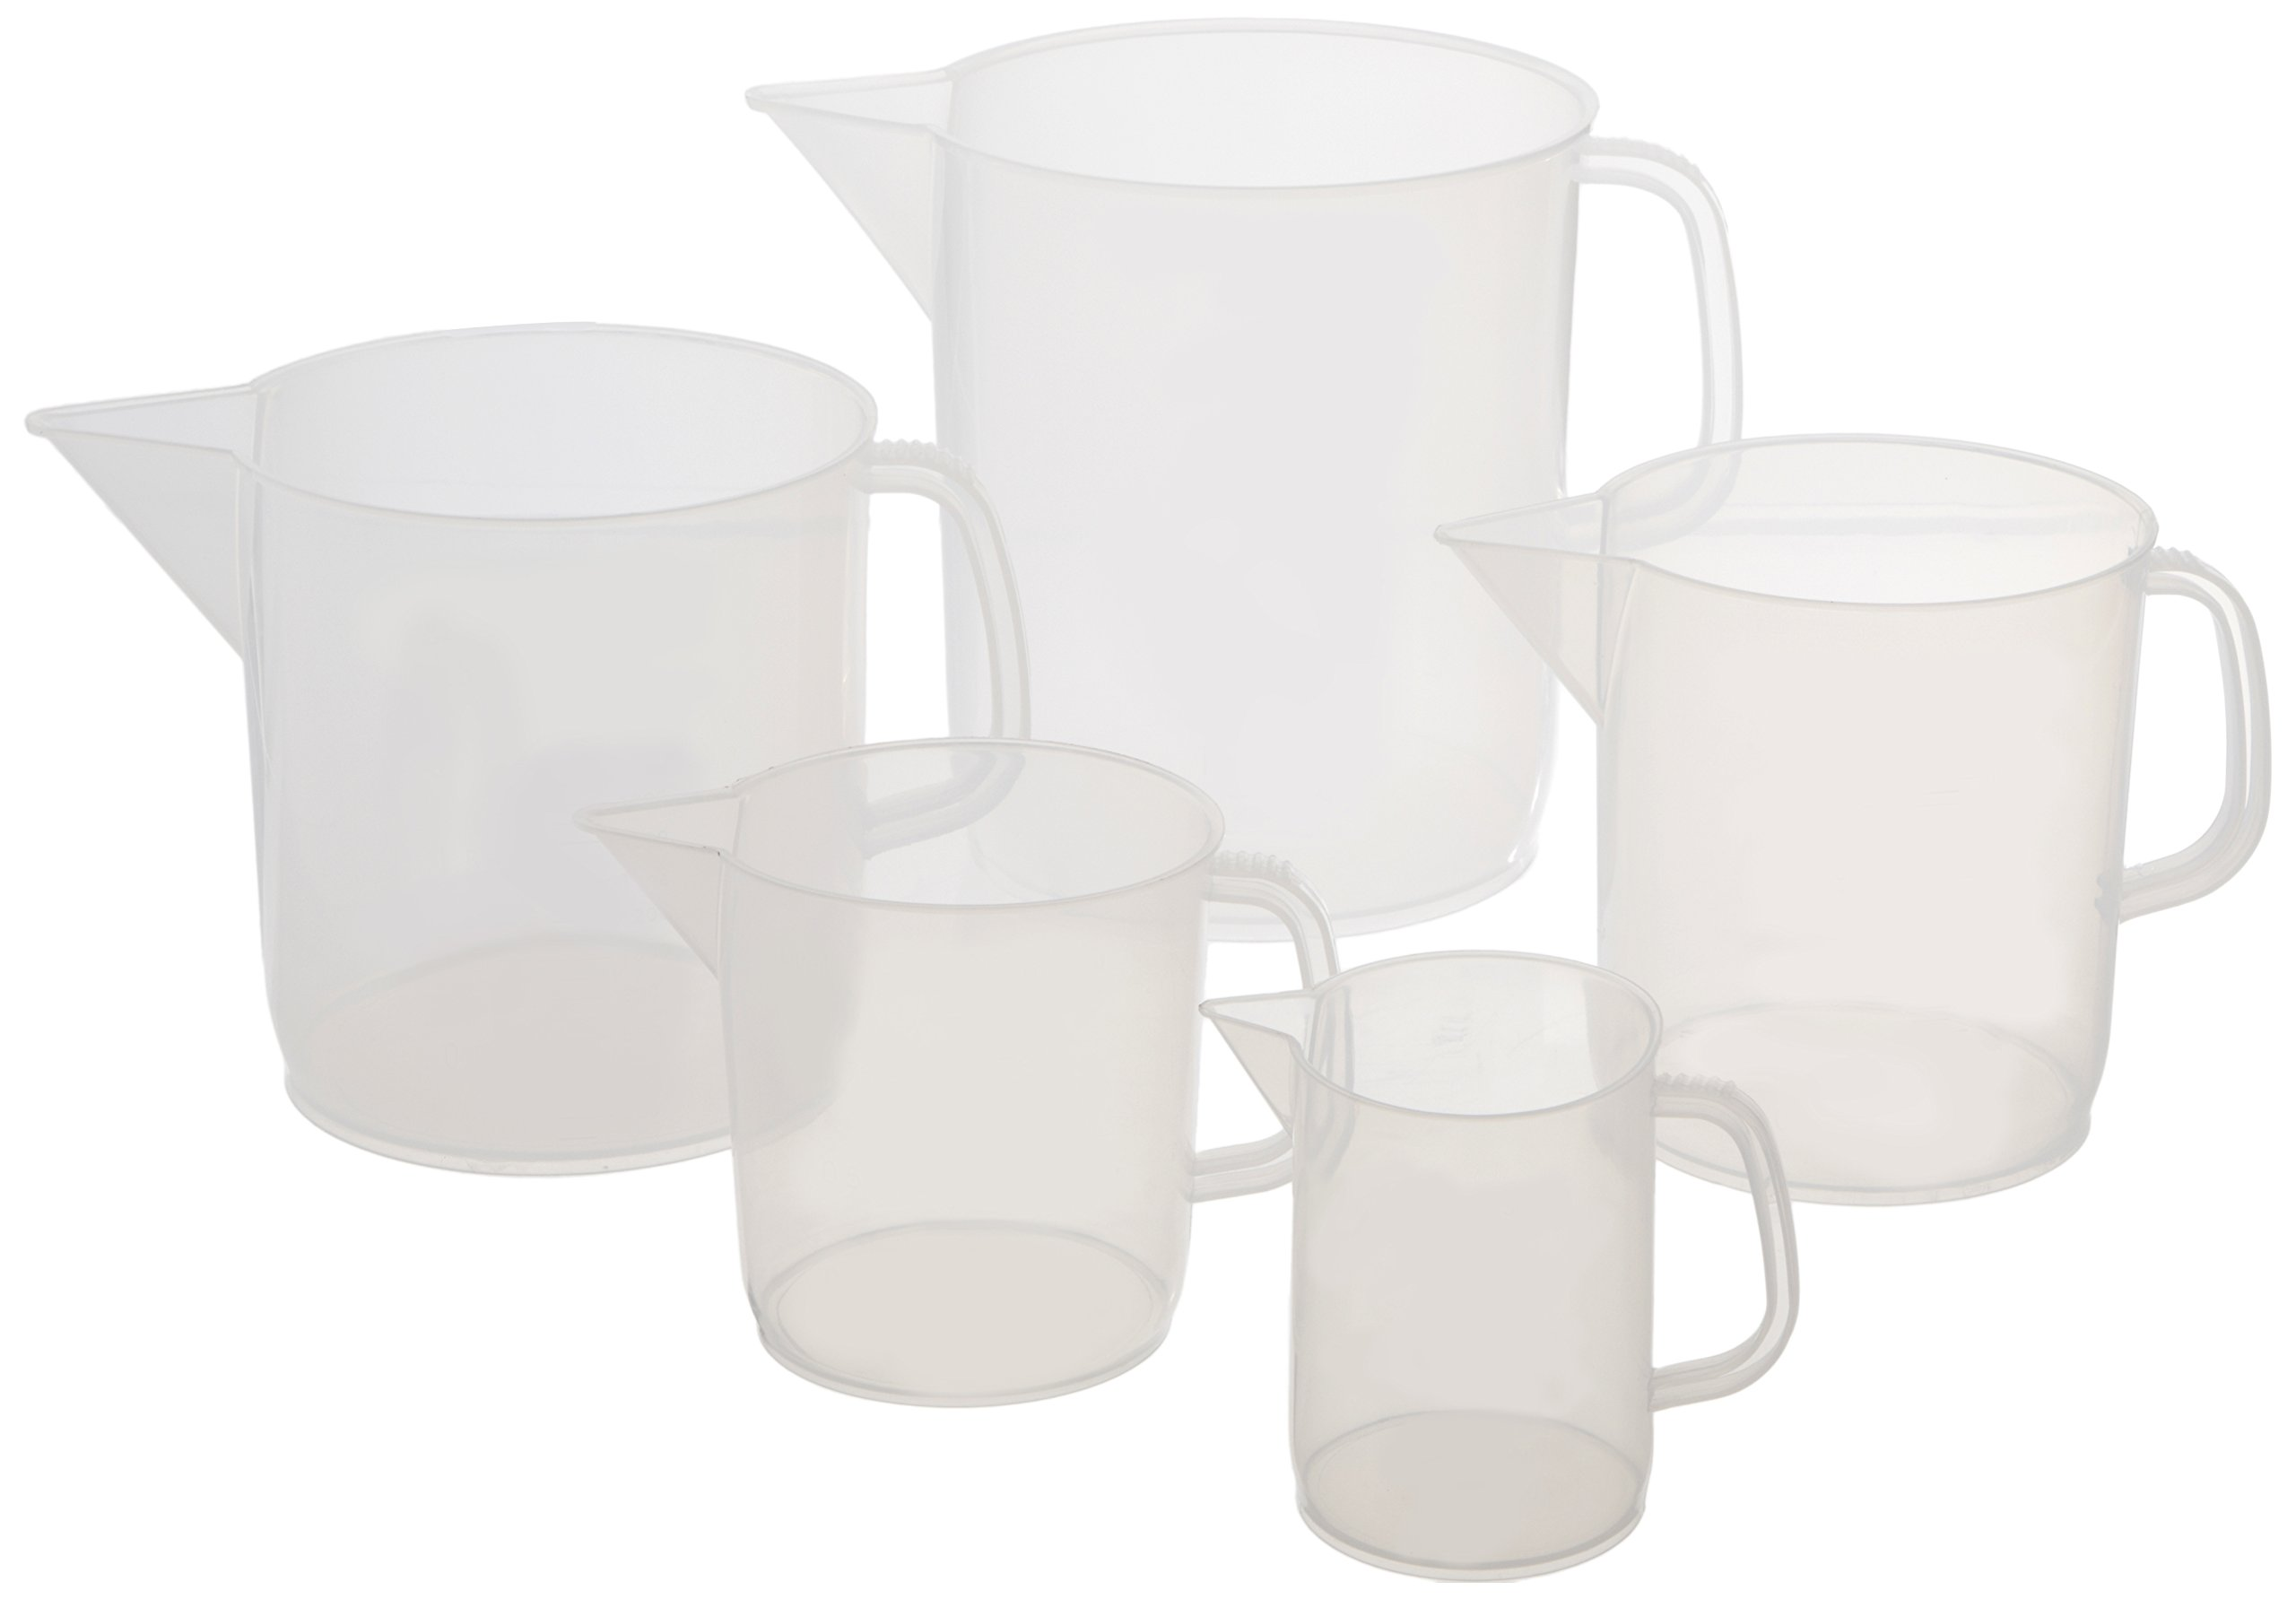 United Scientific PJSET5 Polypropylene Short Form Pitchers, 5 Pitchers (Set of 5) by United Scientific Supplies